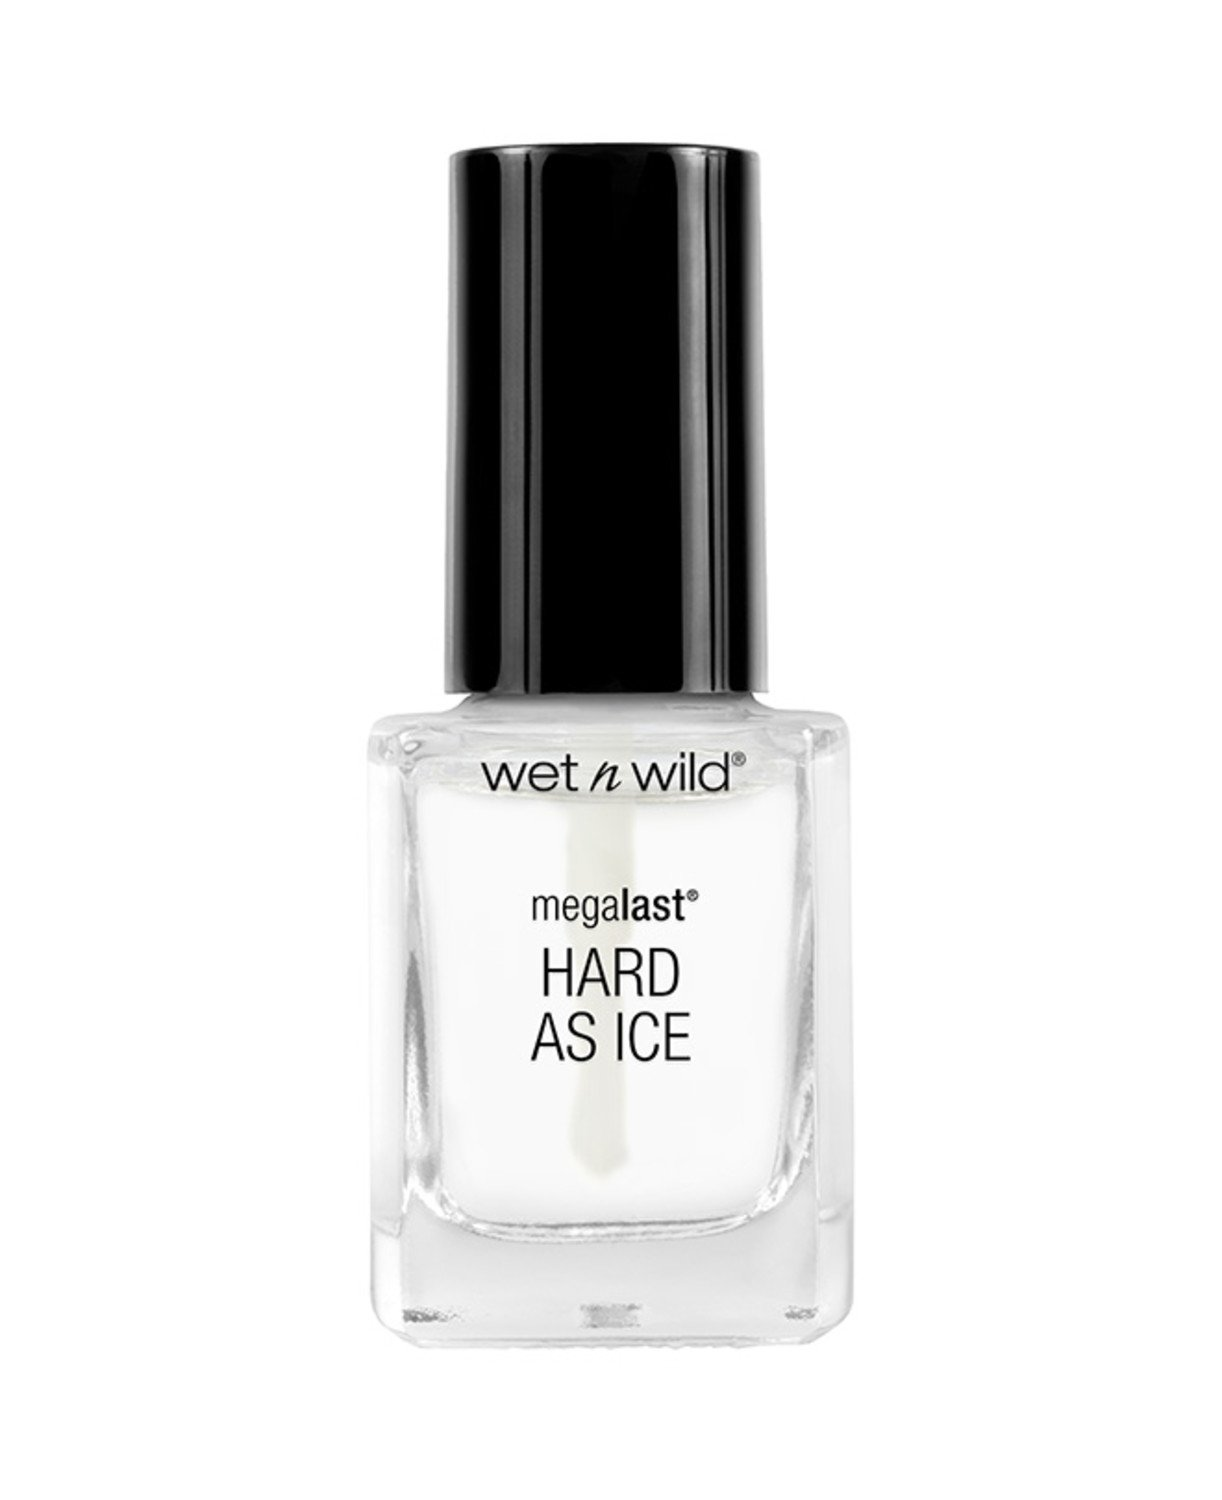 Wet & Wild Megalast Hard as Ice Nail Polish Top Coat, 2.1 Ounce by Wet & Wild